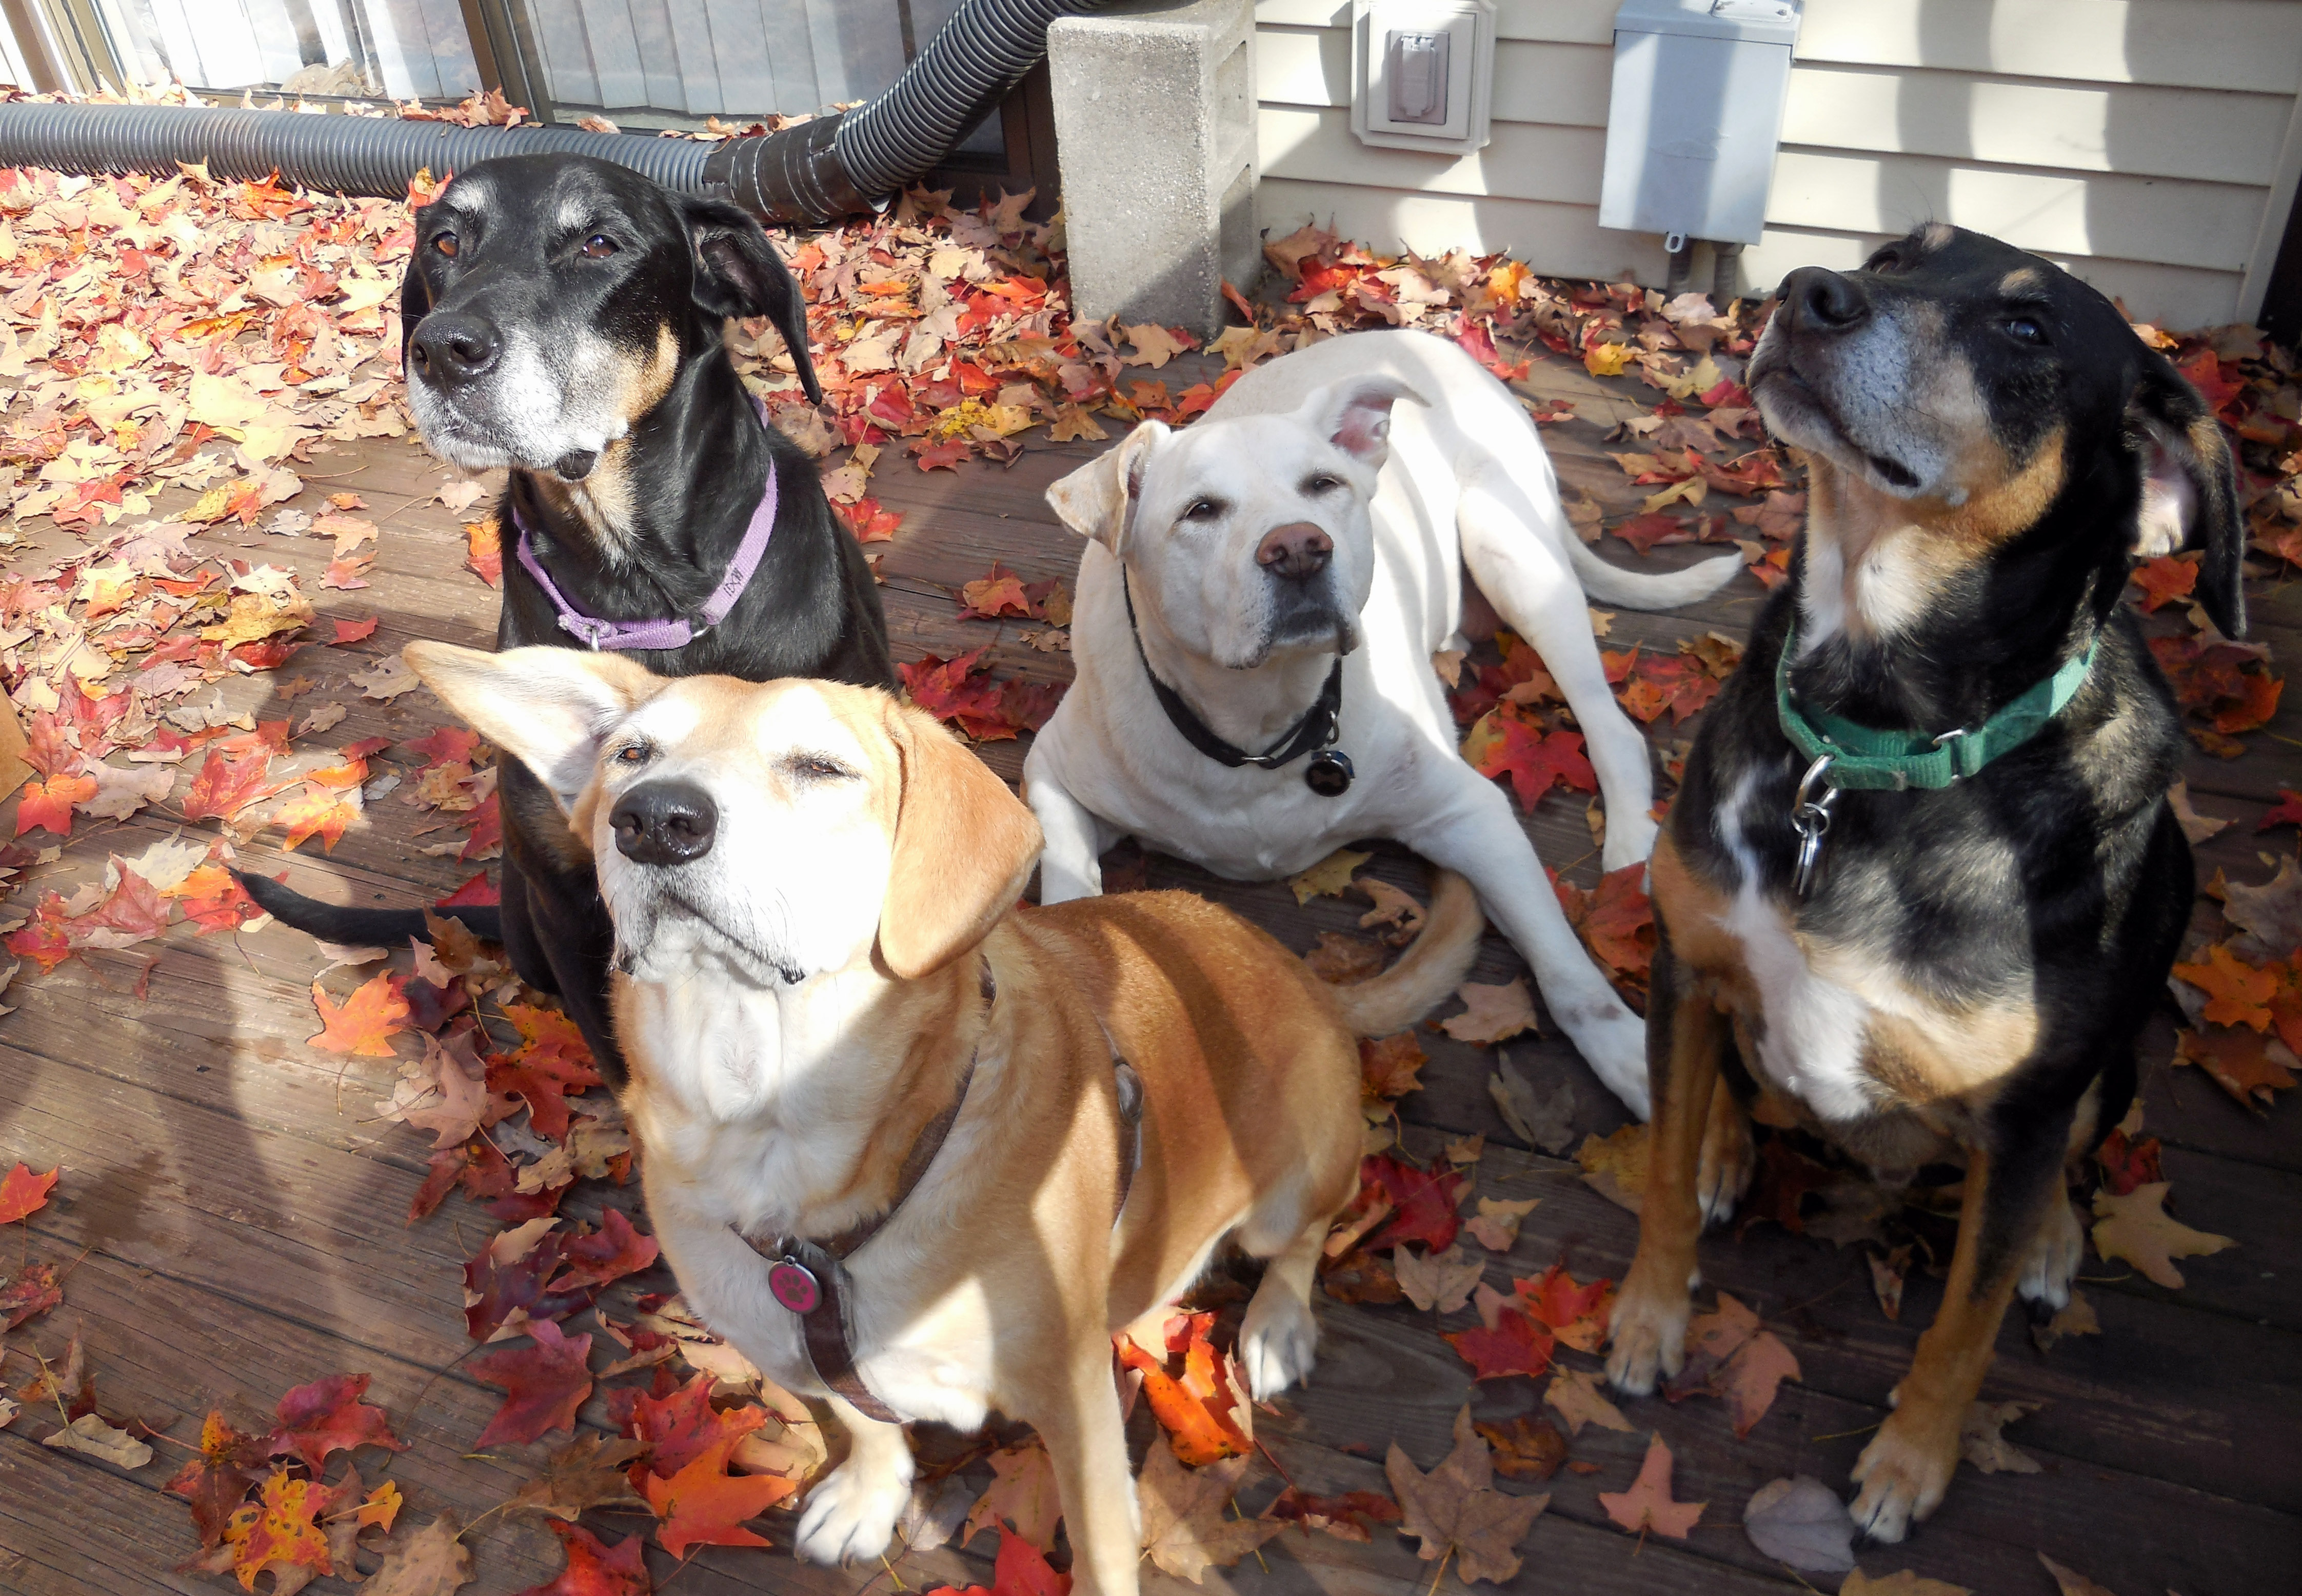 4dogs_101413g